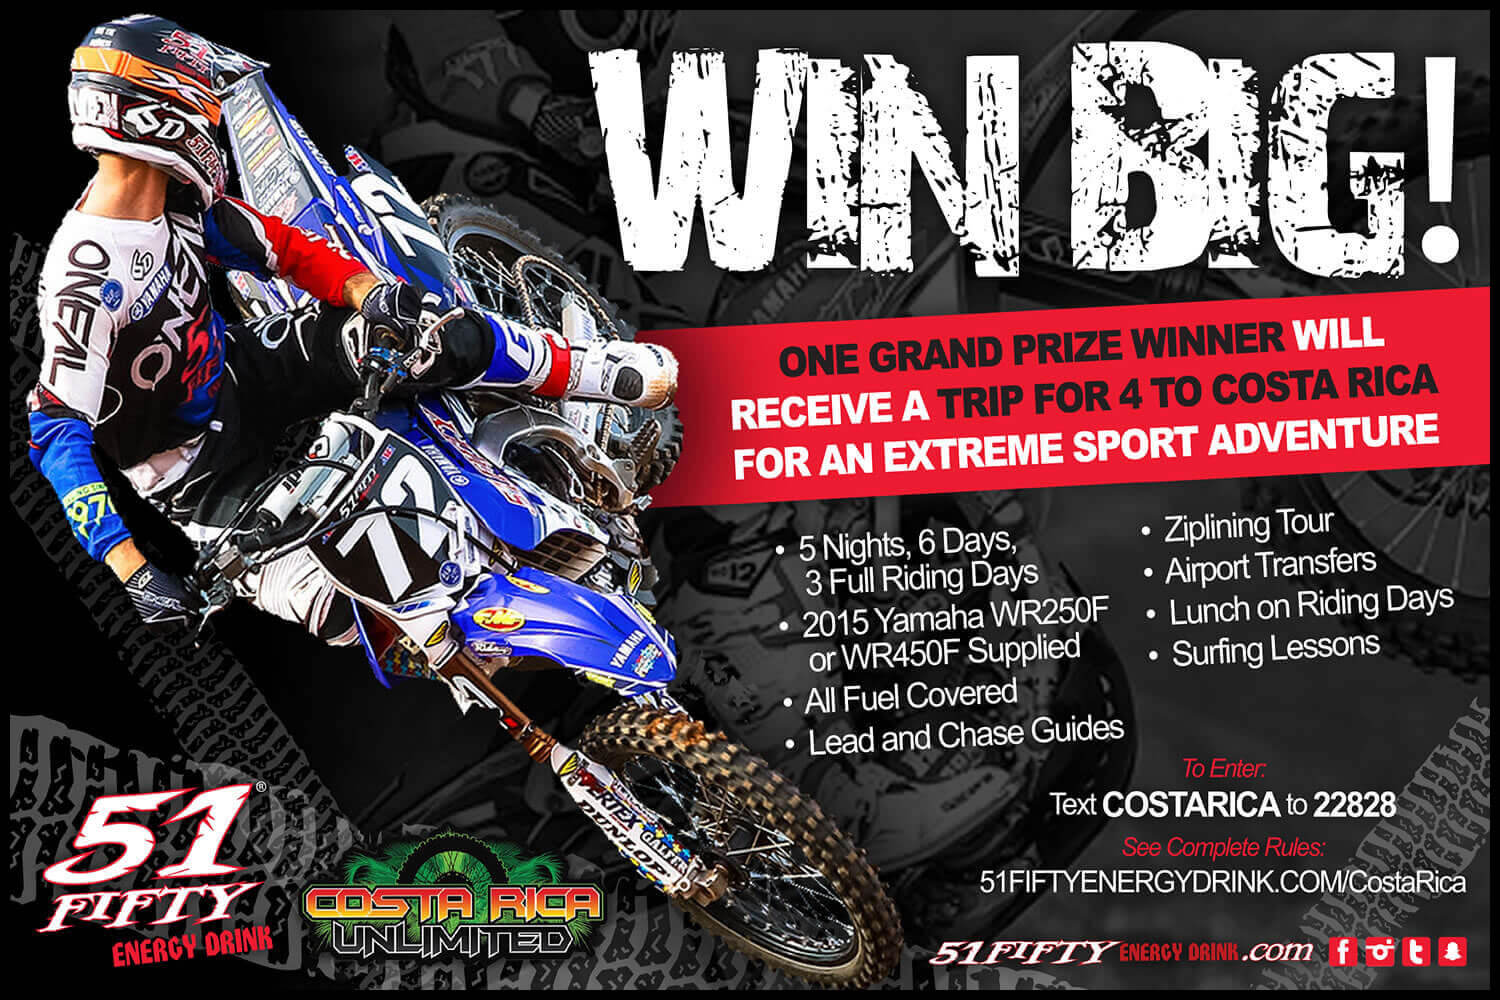 Costa Rica Unlimited contest flyer